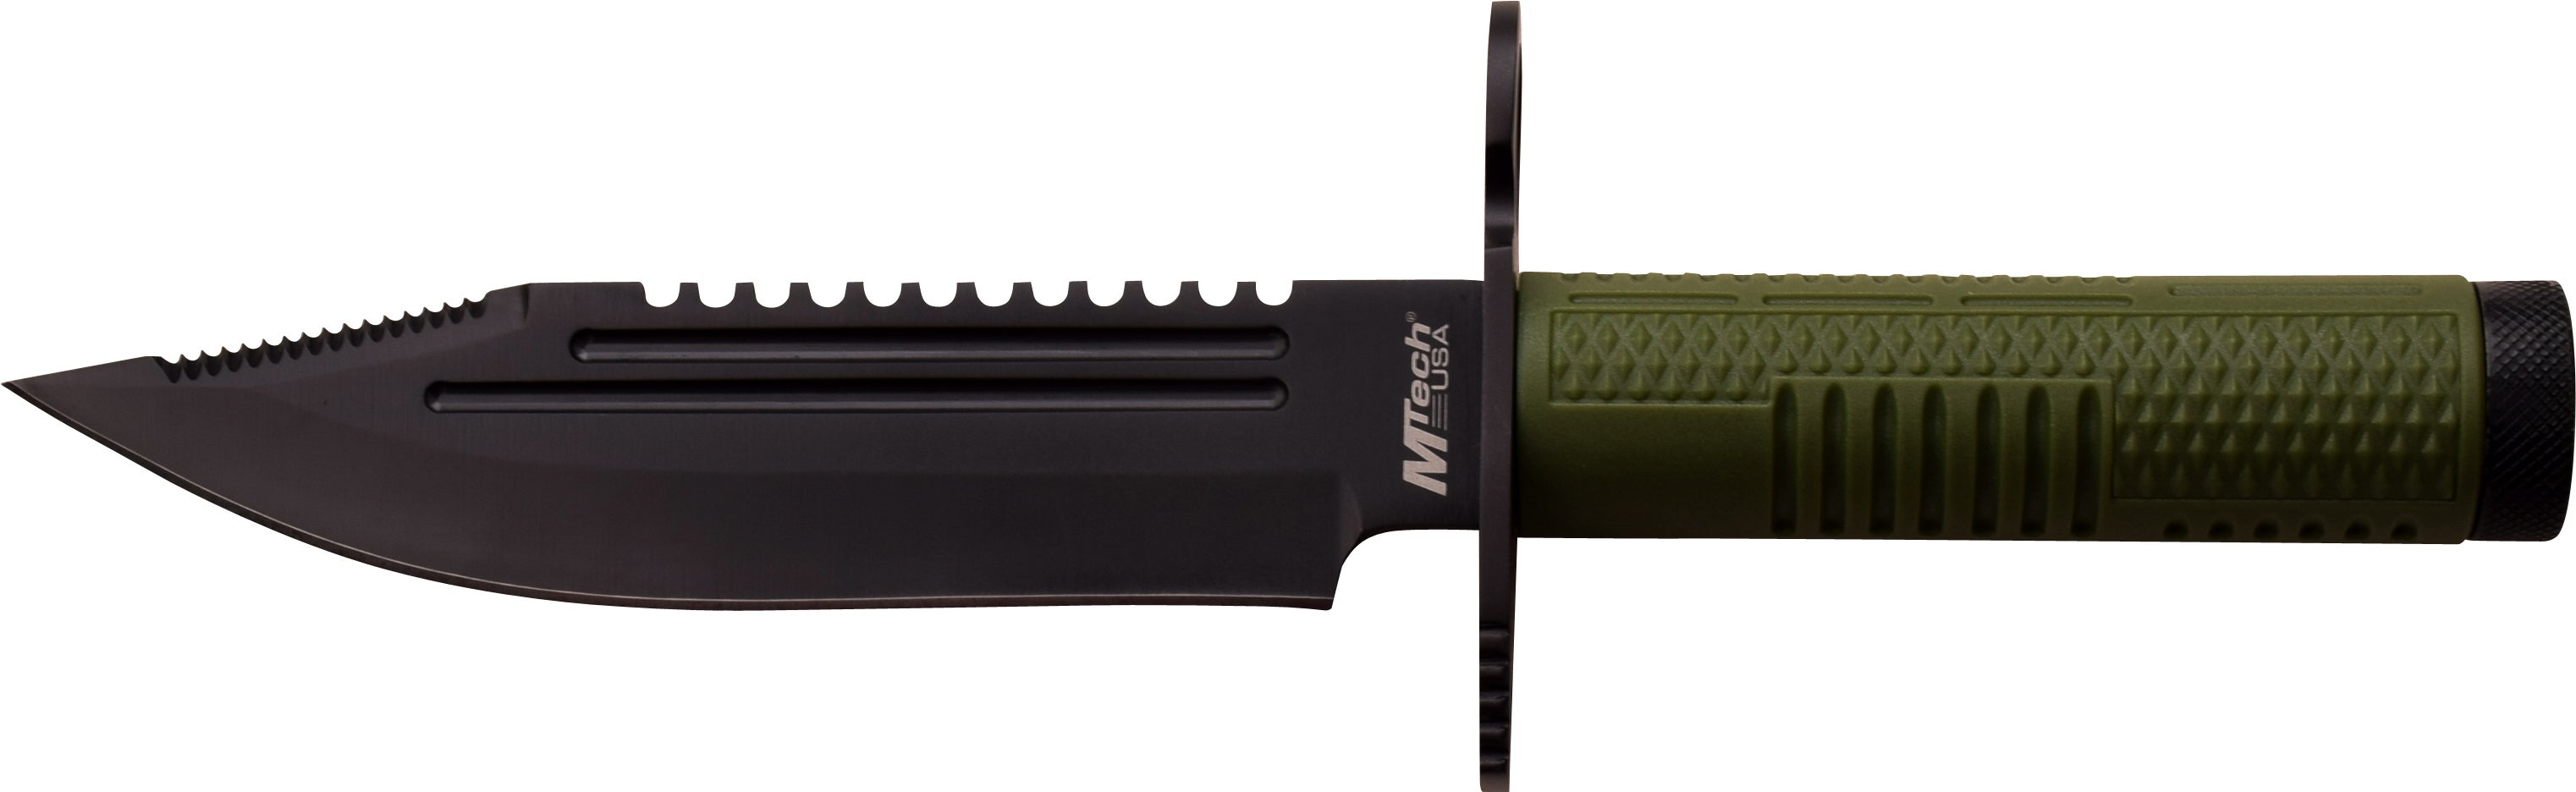 Mtech Double-serrated Fixed-blade Stainless Steel 11-piece Survival Knife Set